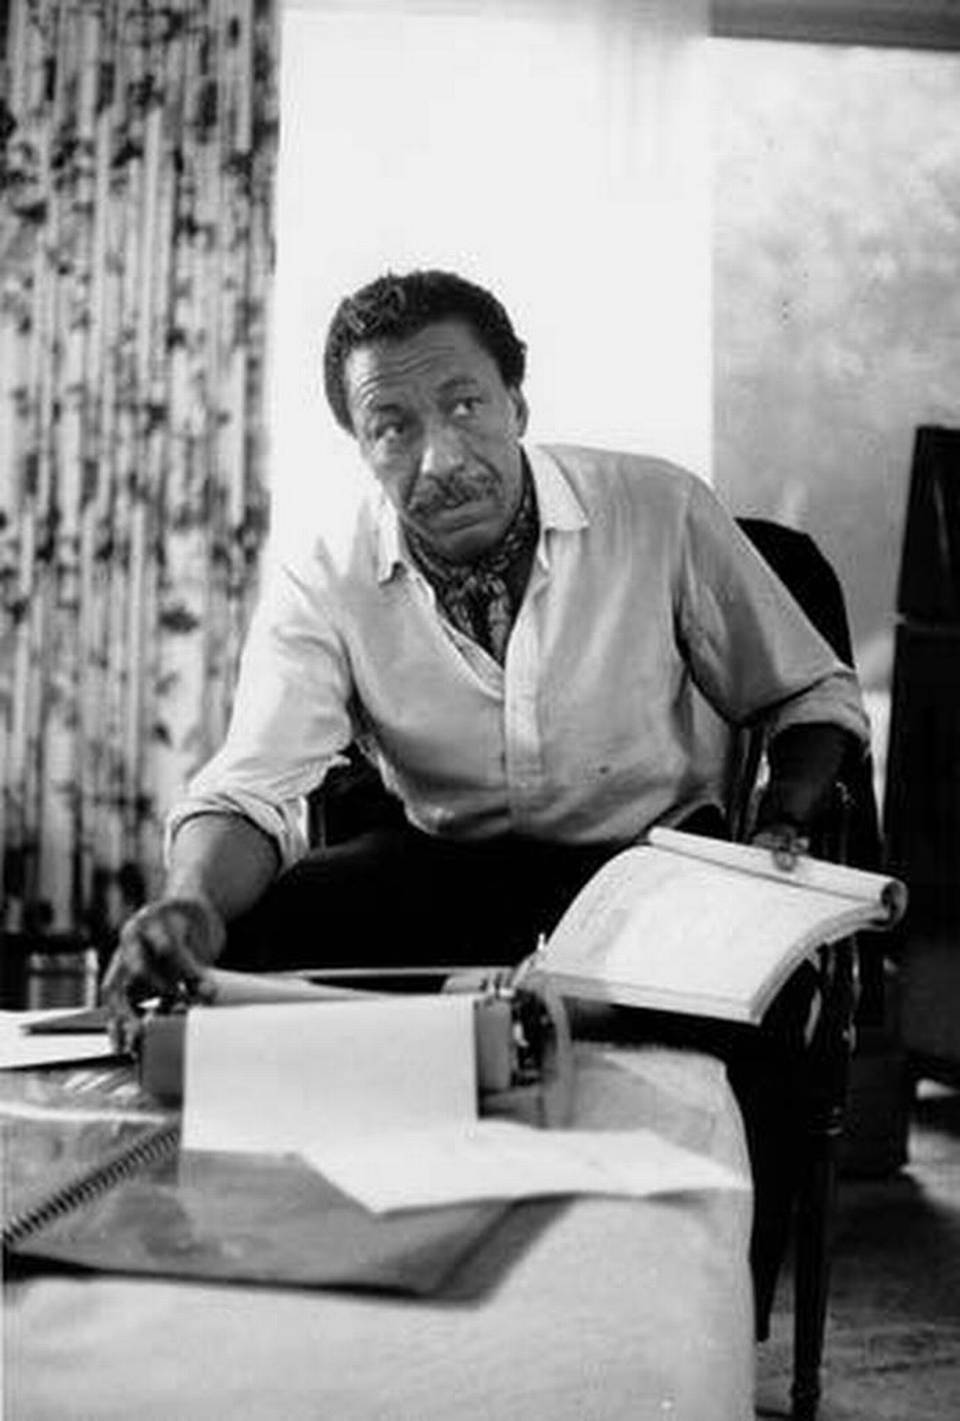 a biography of gordon parks an american photographer Summer 2006 the importance of being gordon parks he was the first black filmmaker to direct a studio picture, and his first film shaft helped create a genre but parks' enduring contribution was breaking down the barriers of racism in hollywood.